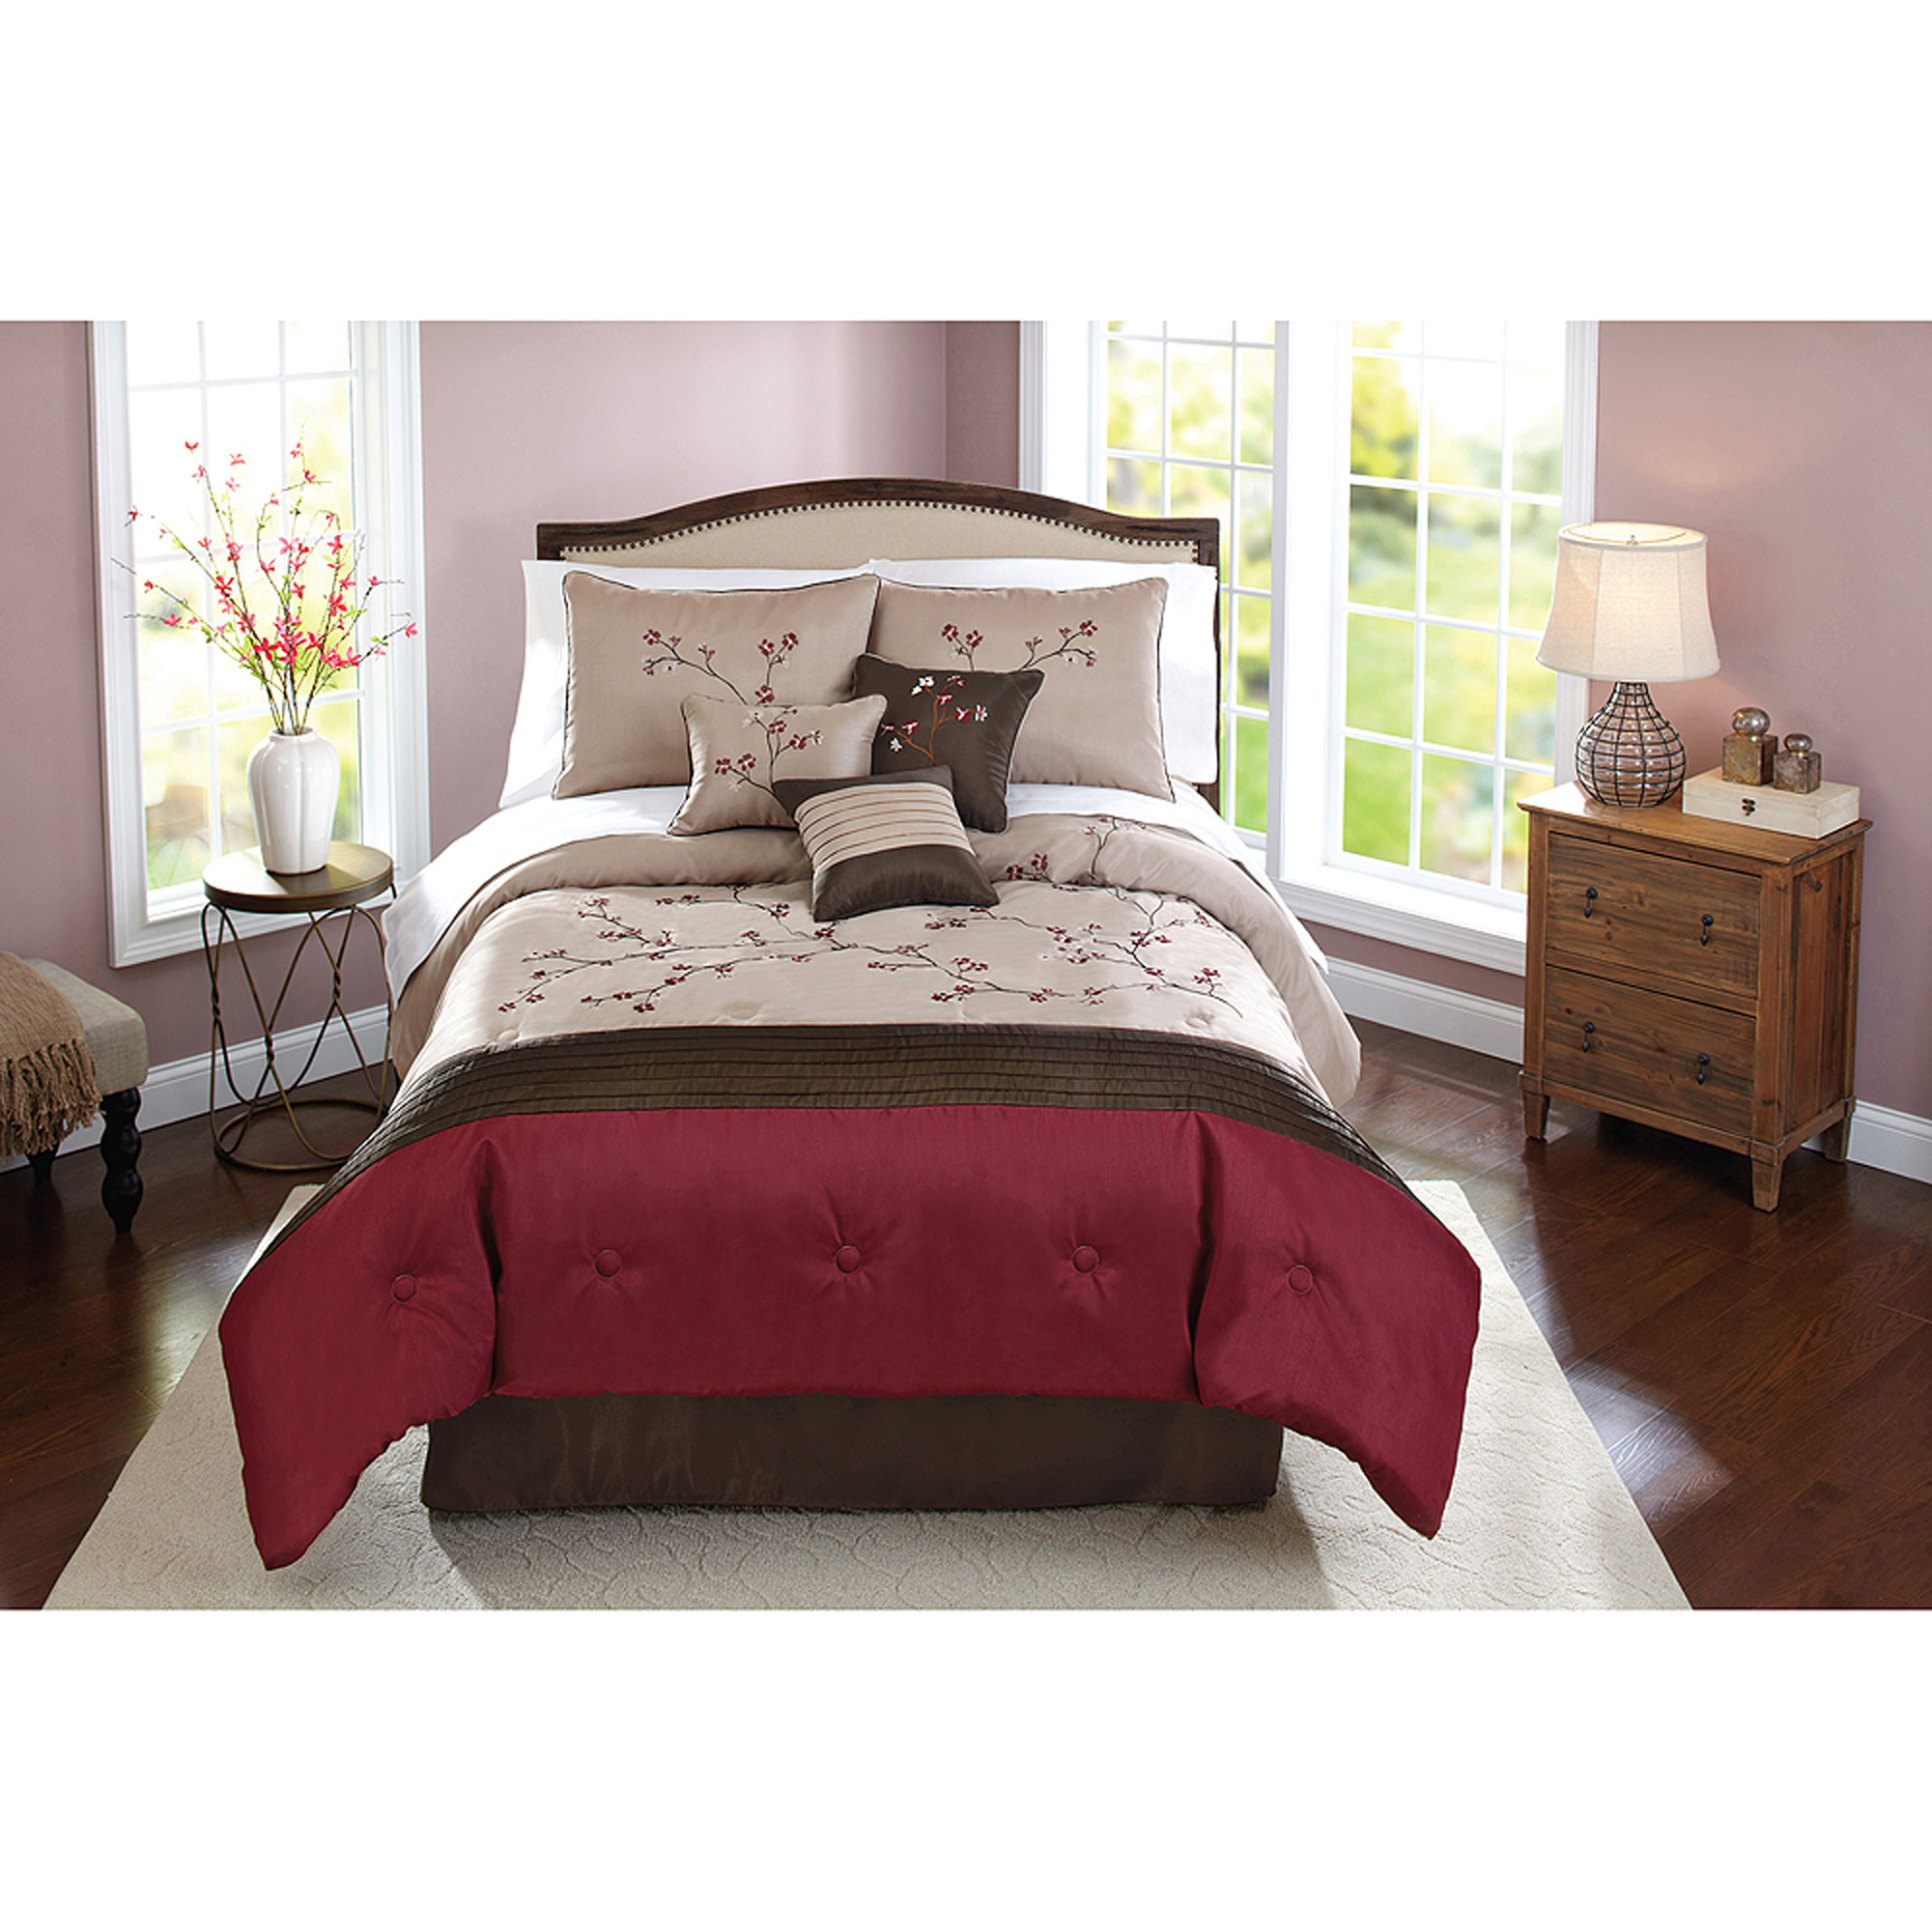 pertaining bedding set decor and faux fur homes throughout to better cgb home comforter quilt magnificent gardens sets